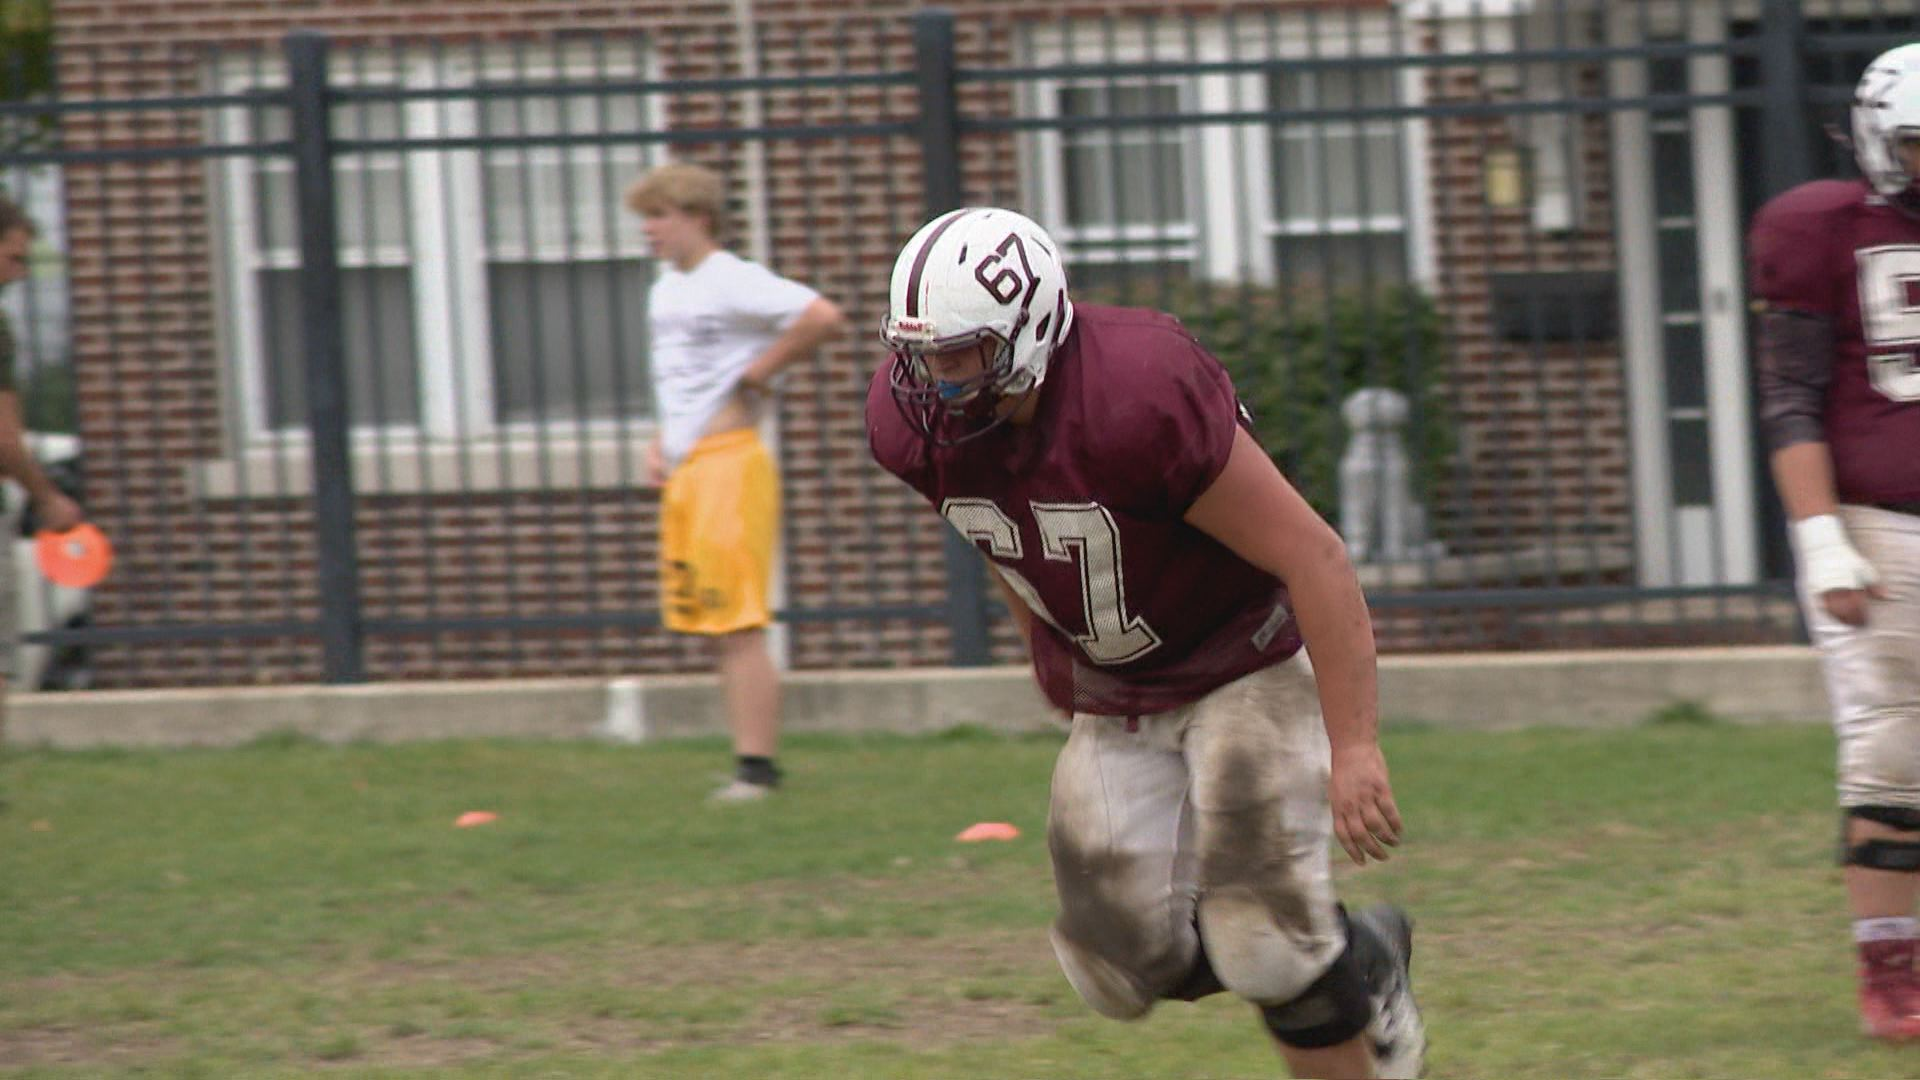 Faulkner is a force up front for the Mishawaka Cavemen // WSBT 22 Photo<p></p>